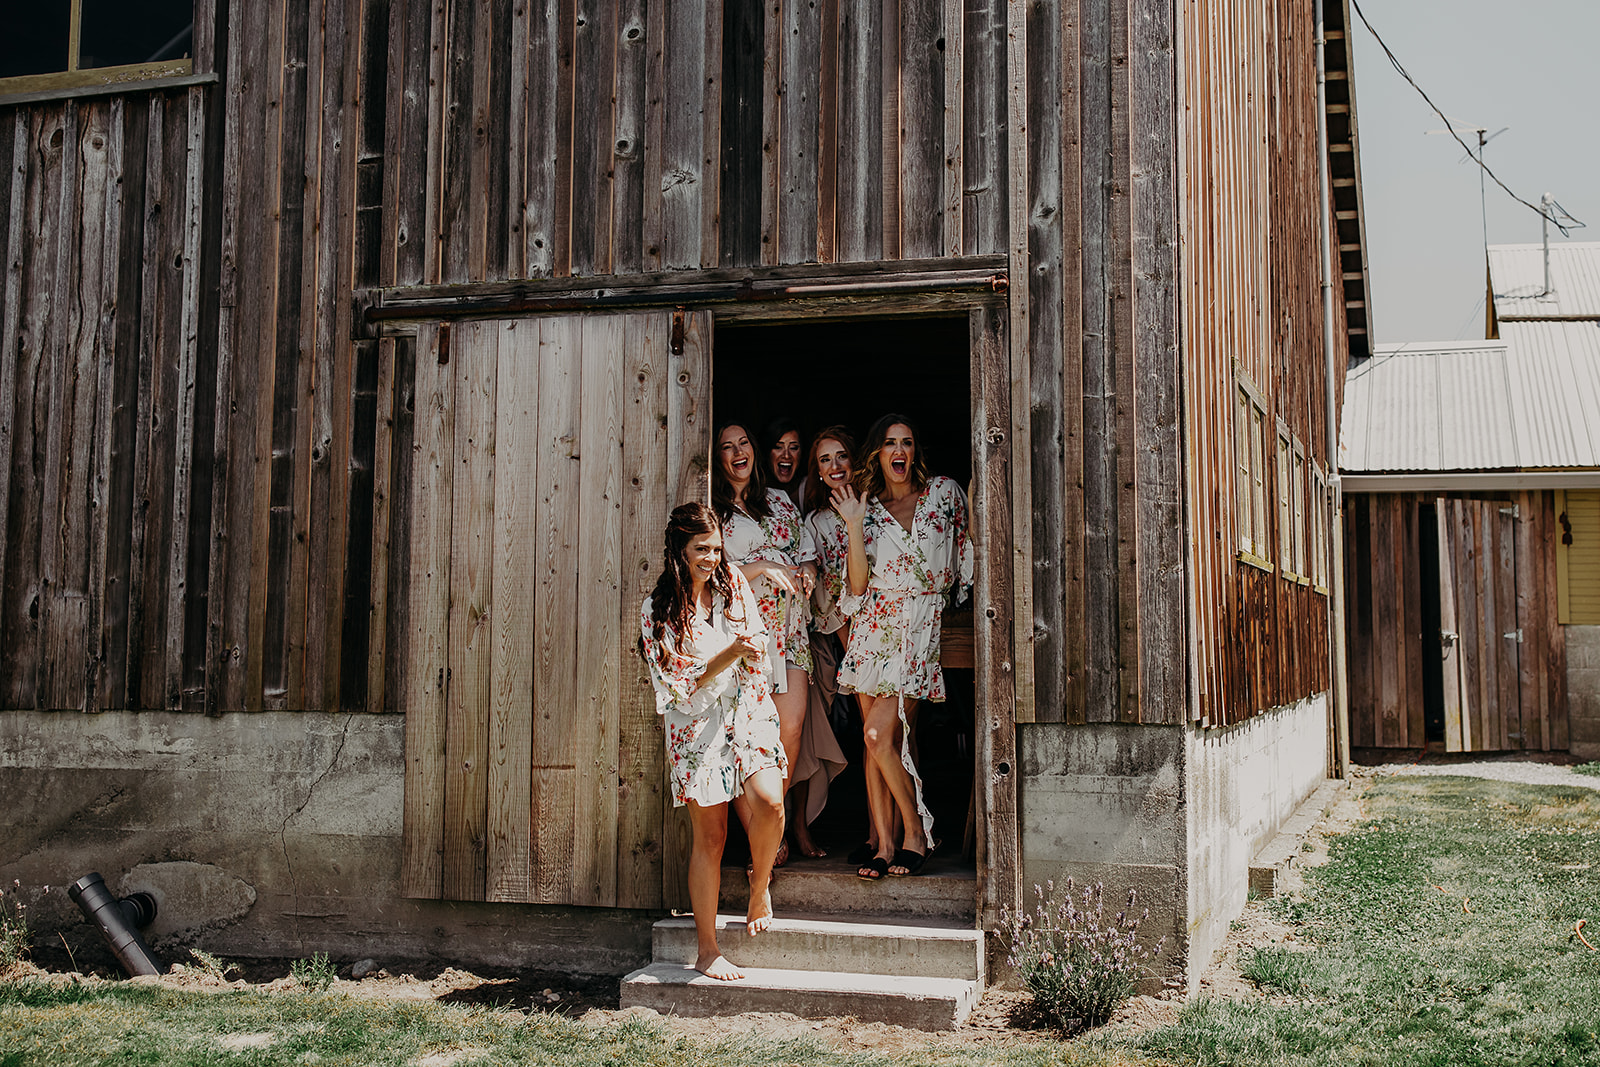 mount-vernon-wedding-salt-box-barn-amanda-riley-megan-gallagher-photography-3_(159_of_250).jpg